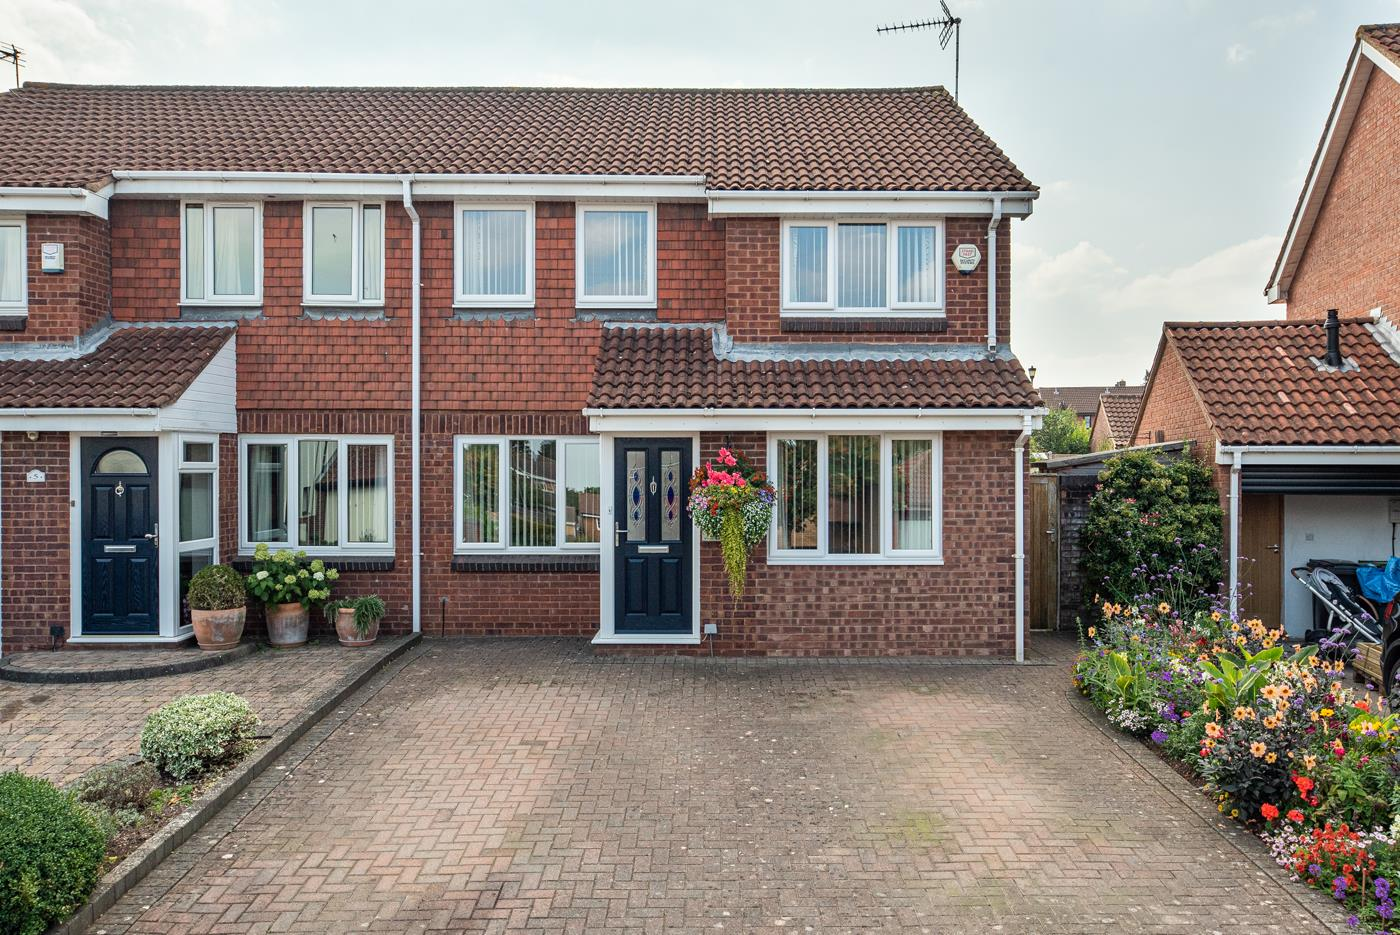 3 bed house for sale in Wildcroft Road, Bristol, BS9